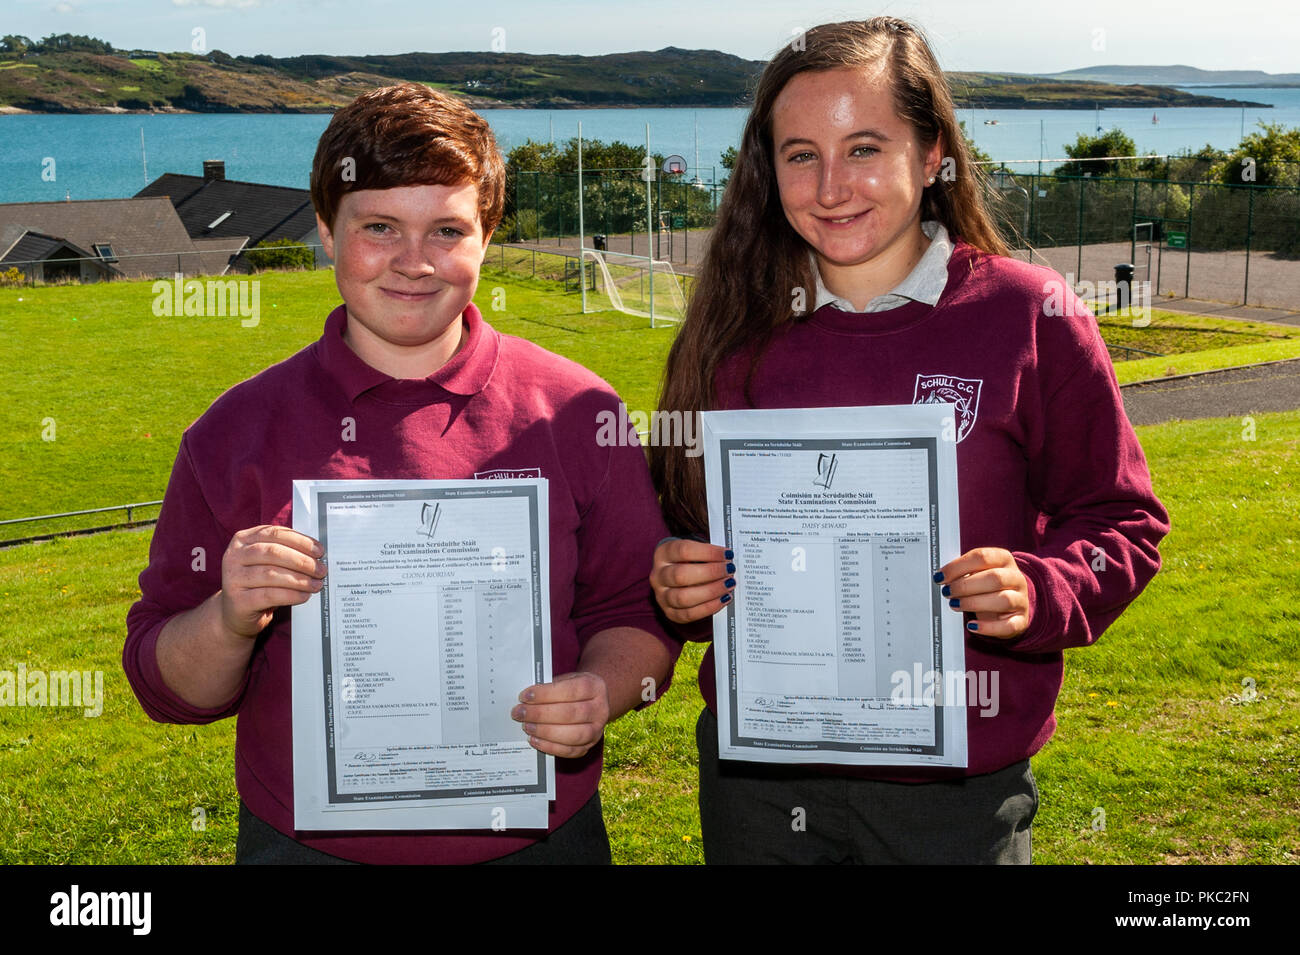 Schull, West Cork, Ireland. 12th Sept, 2018.  Over 62,500 students received their Junior Cert results today. Pictured with their results are Cliona Riordan and Daisy Seaward. Credit: Andy Gibson/Alamy Live News. - Stock Image